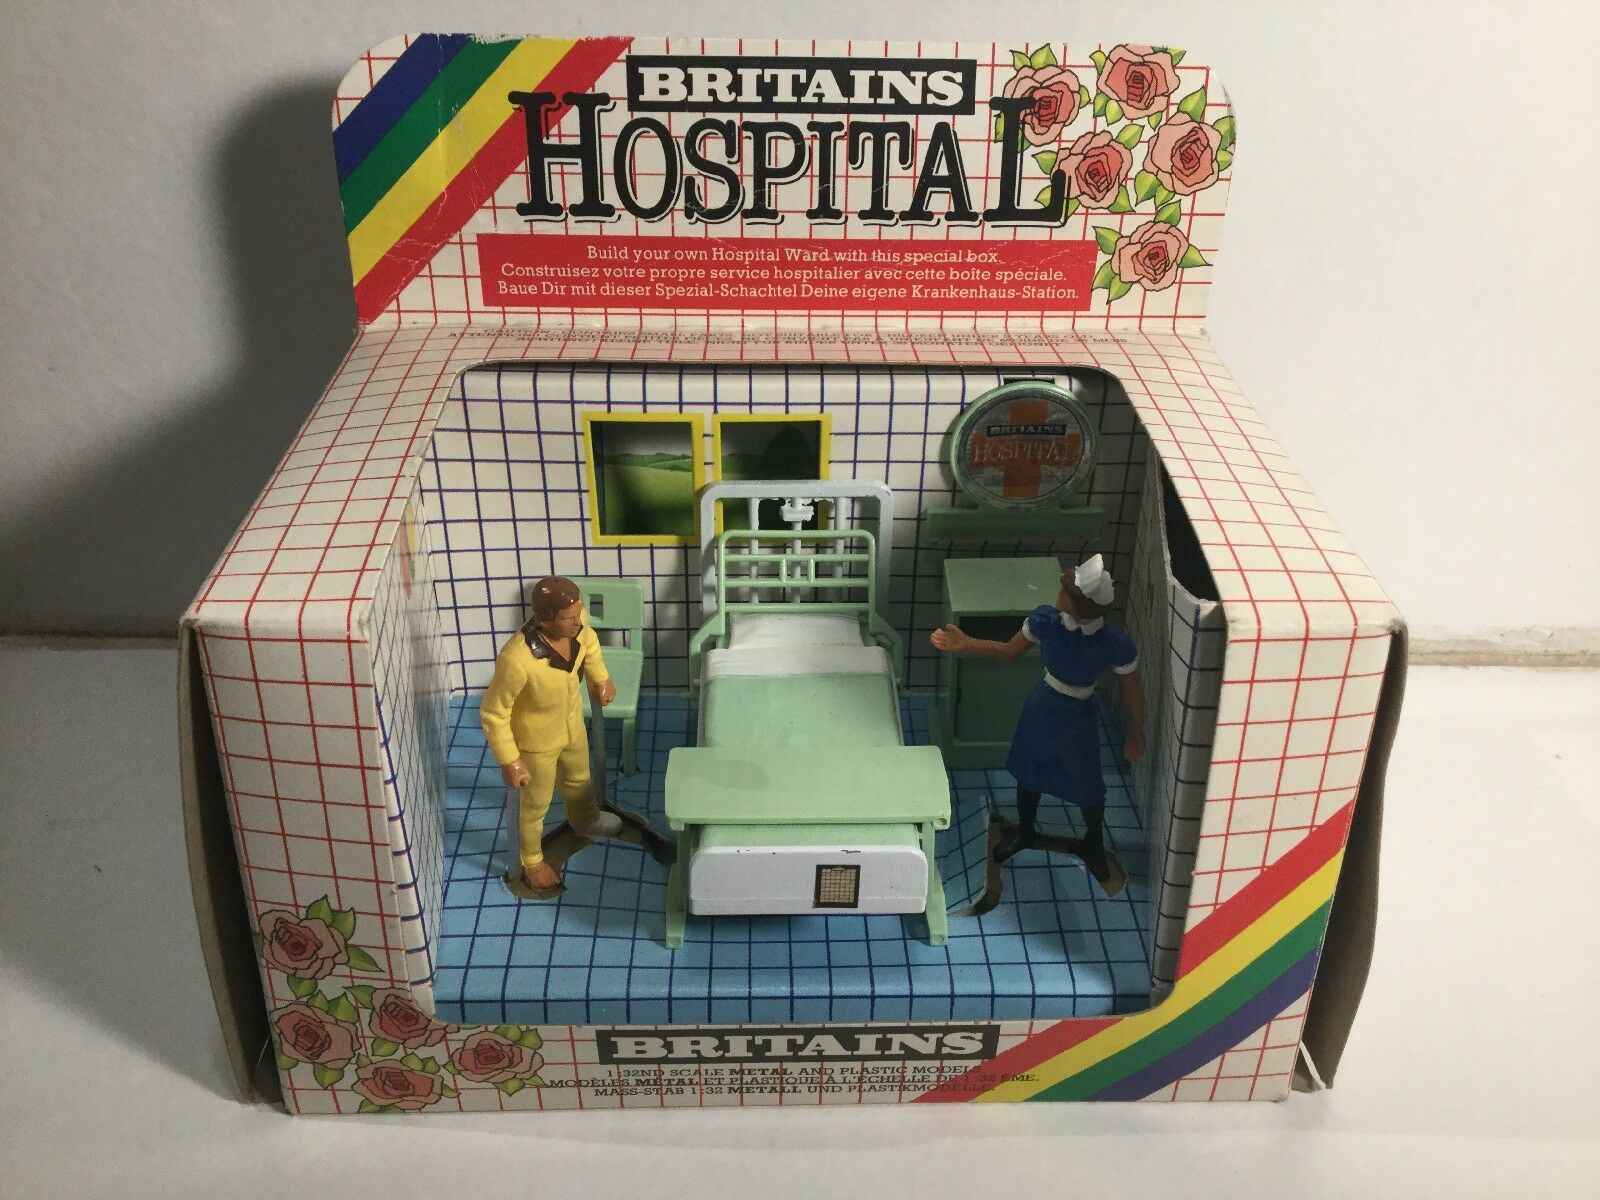 Vintage 1980 1980 1980 Britains Hospital 7854 Nursing Sister And Patient Call The Midwife 0691fe